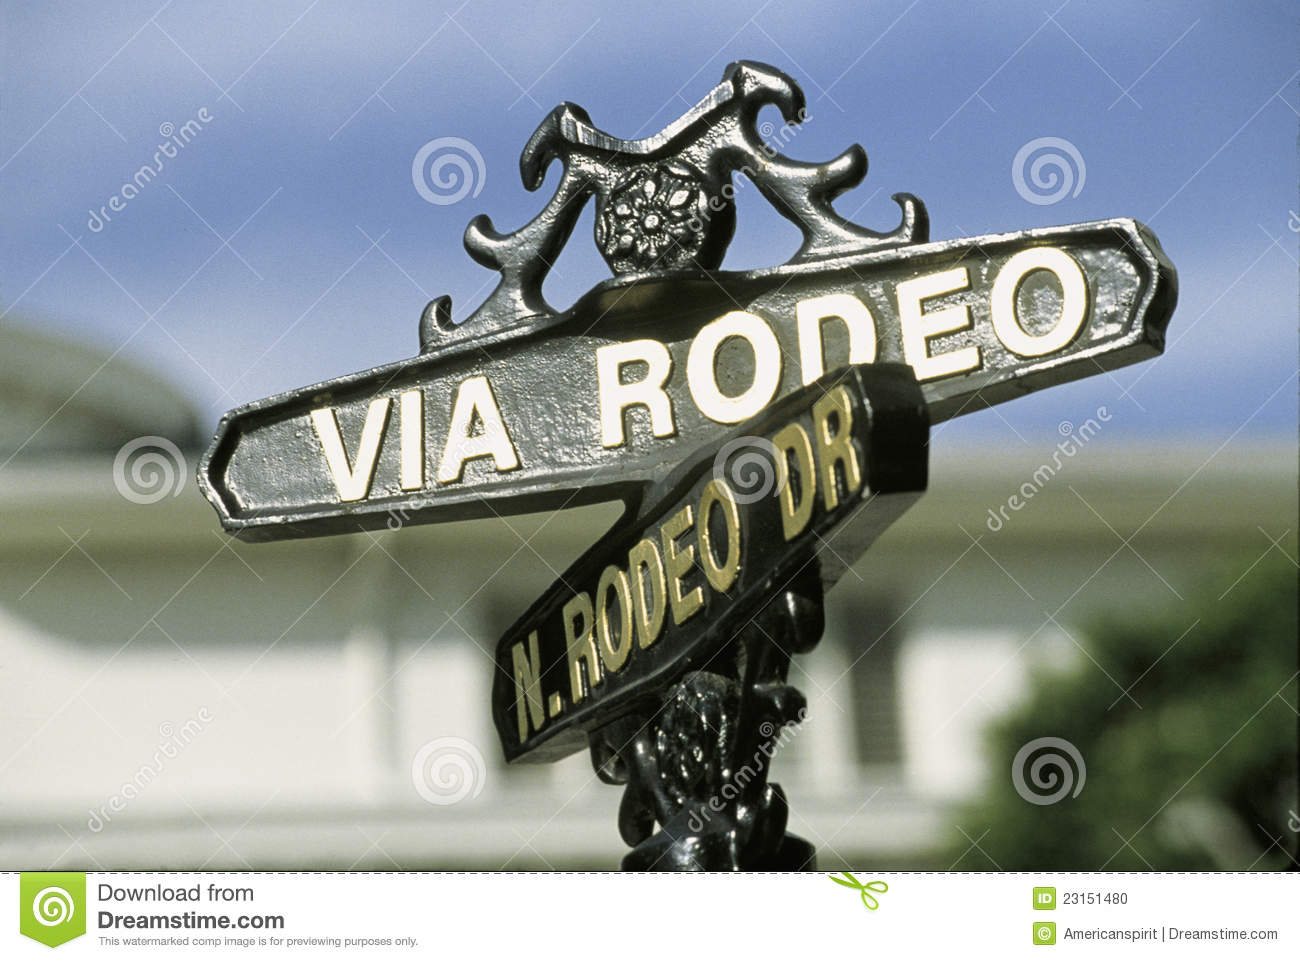 Street sign for rodeo drive beverly hills ca stock photo image street sign for rodeo drive beverly hills ca biocorpaavc